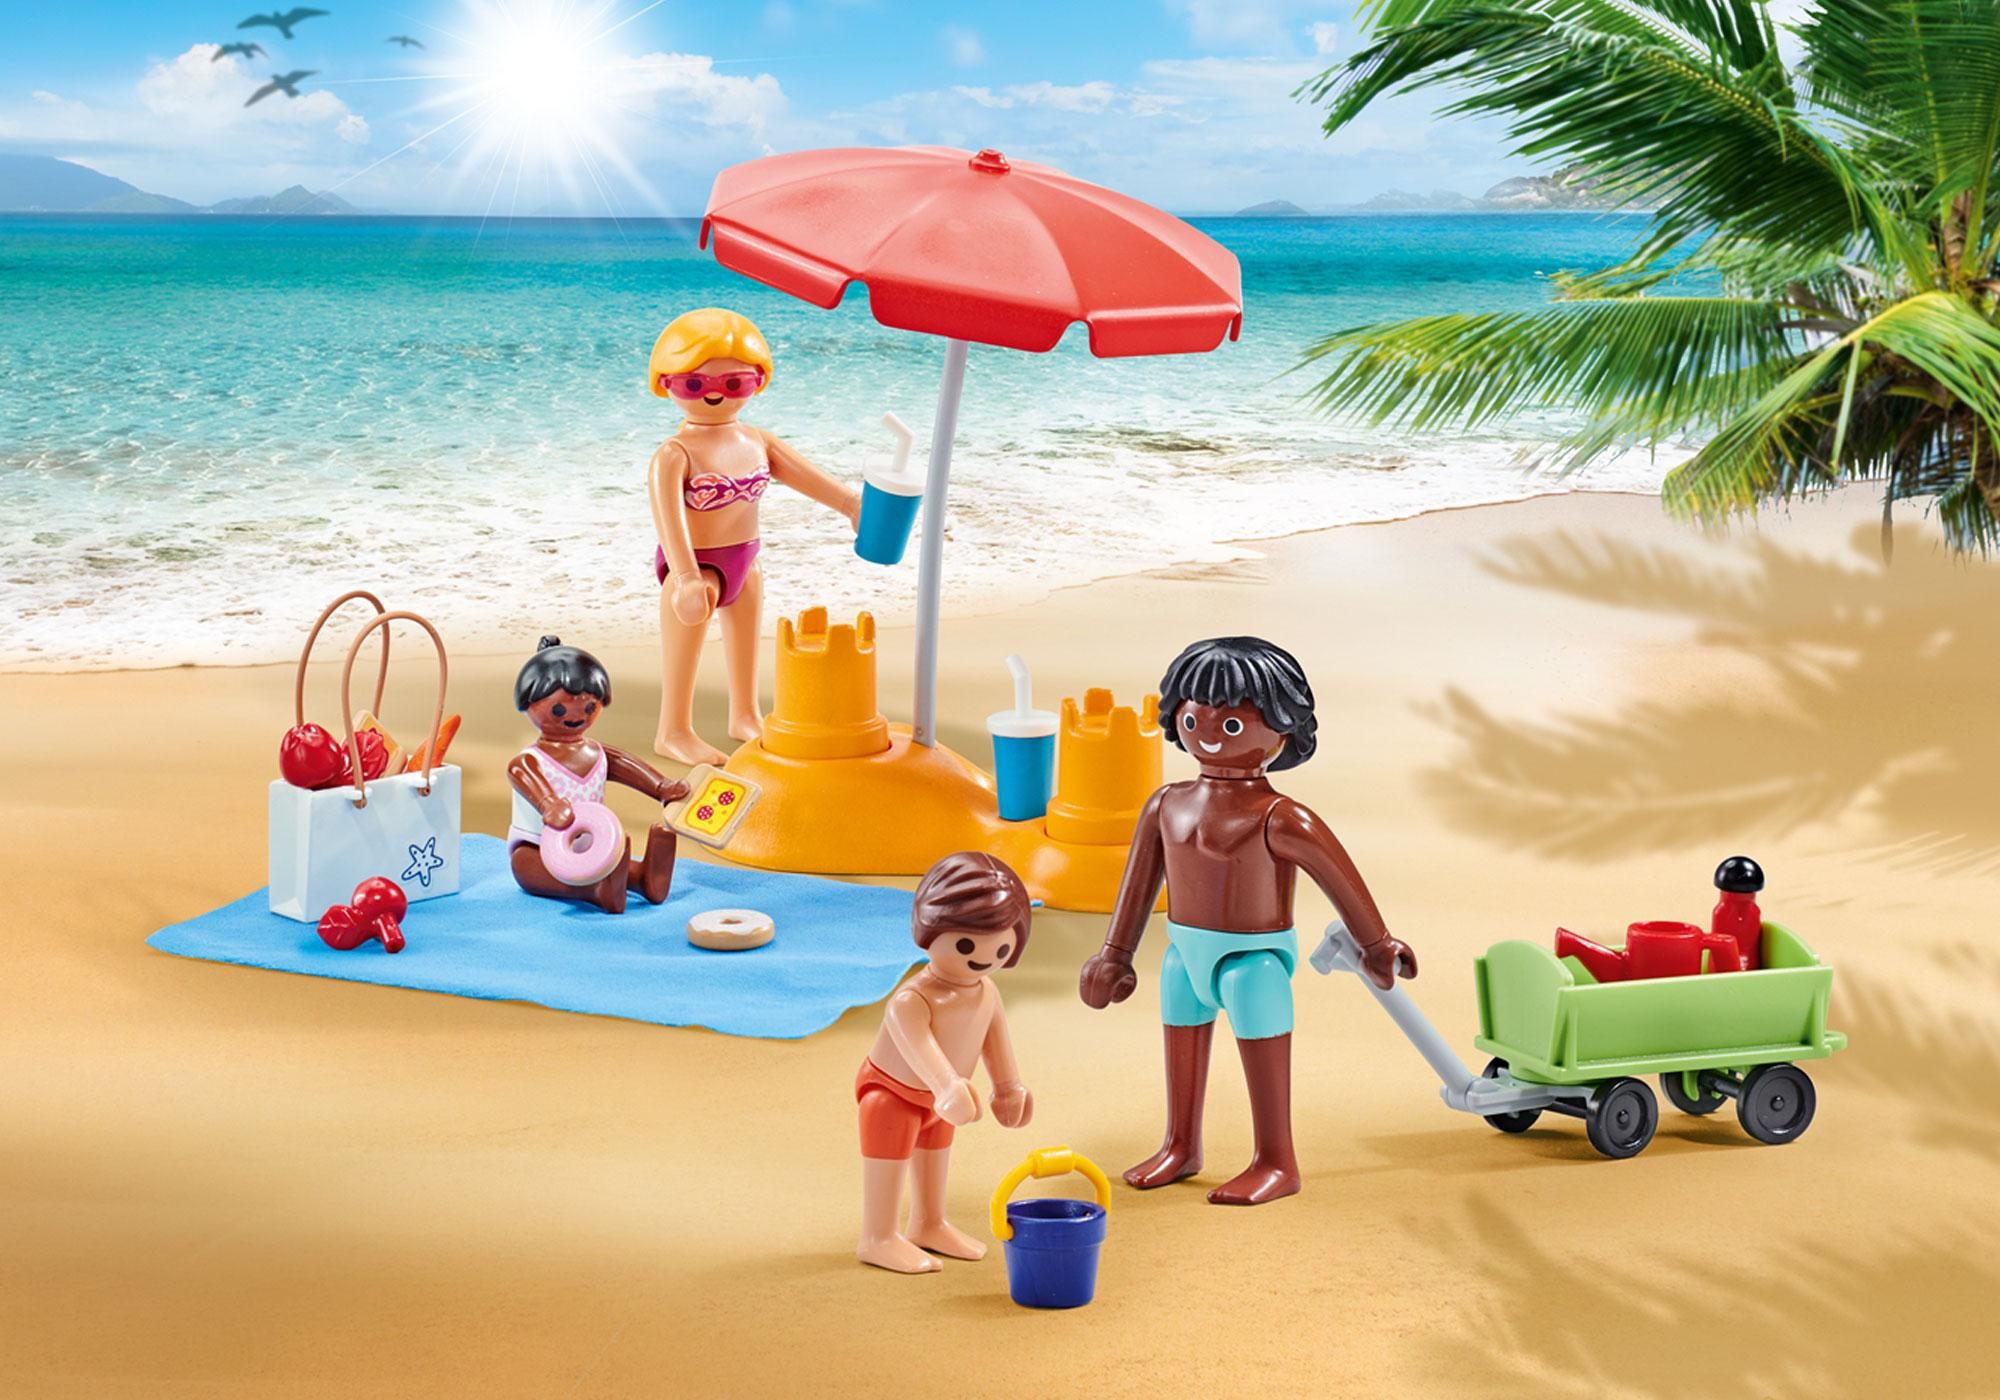 9819_product_detail/Familie am Strand